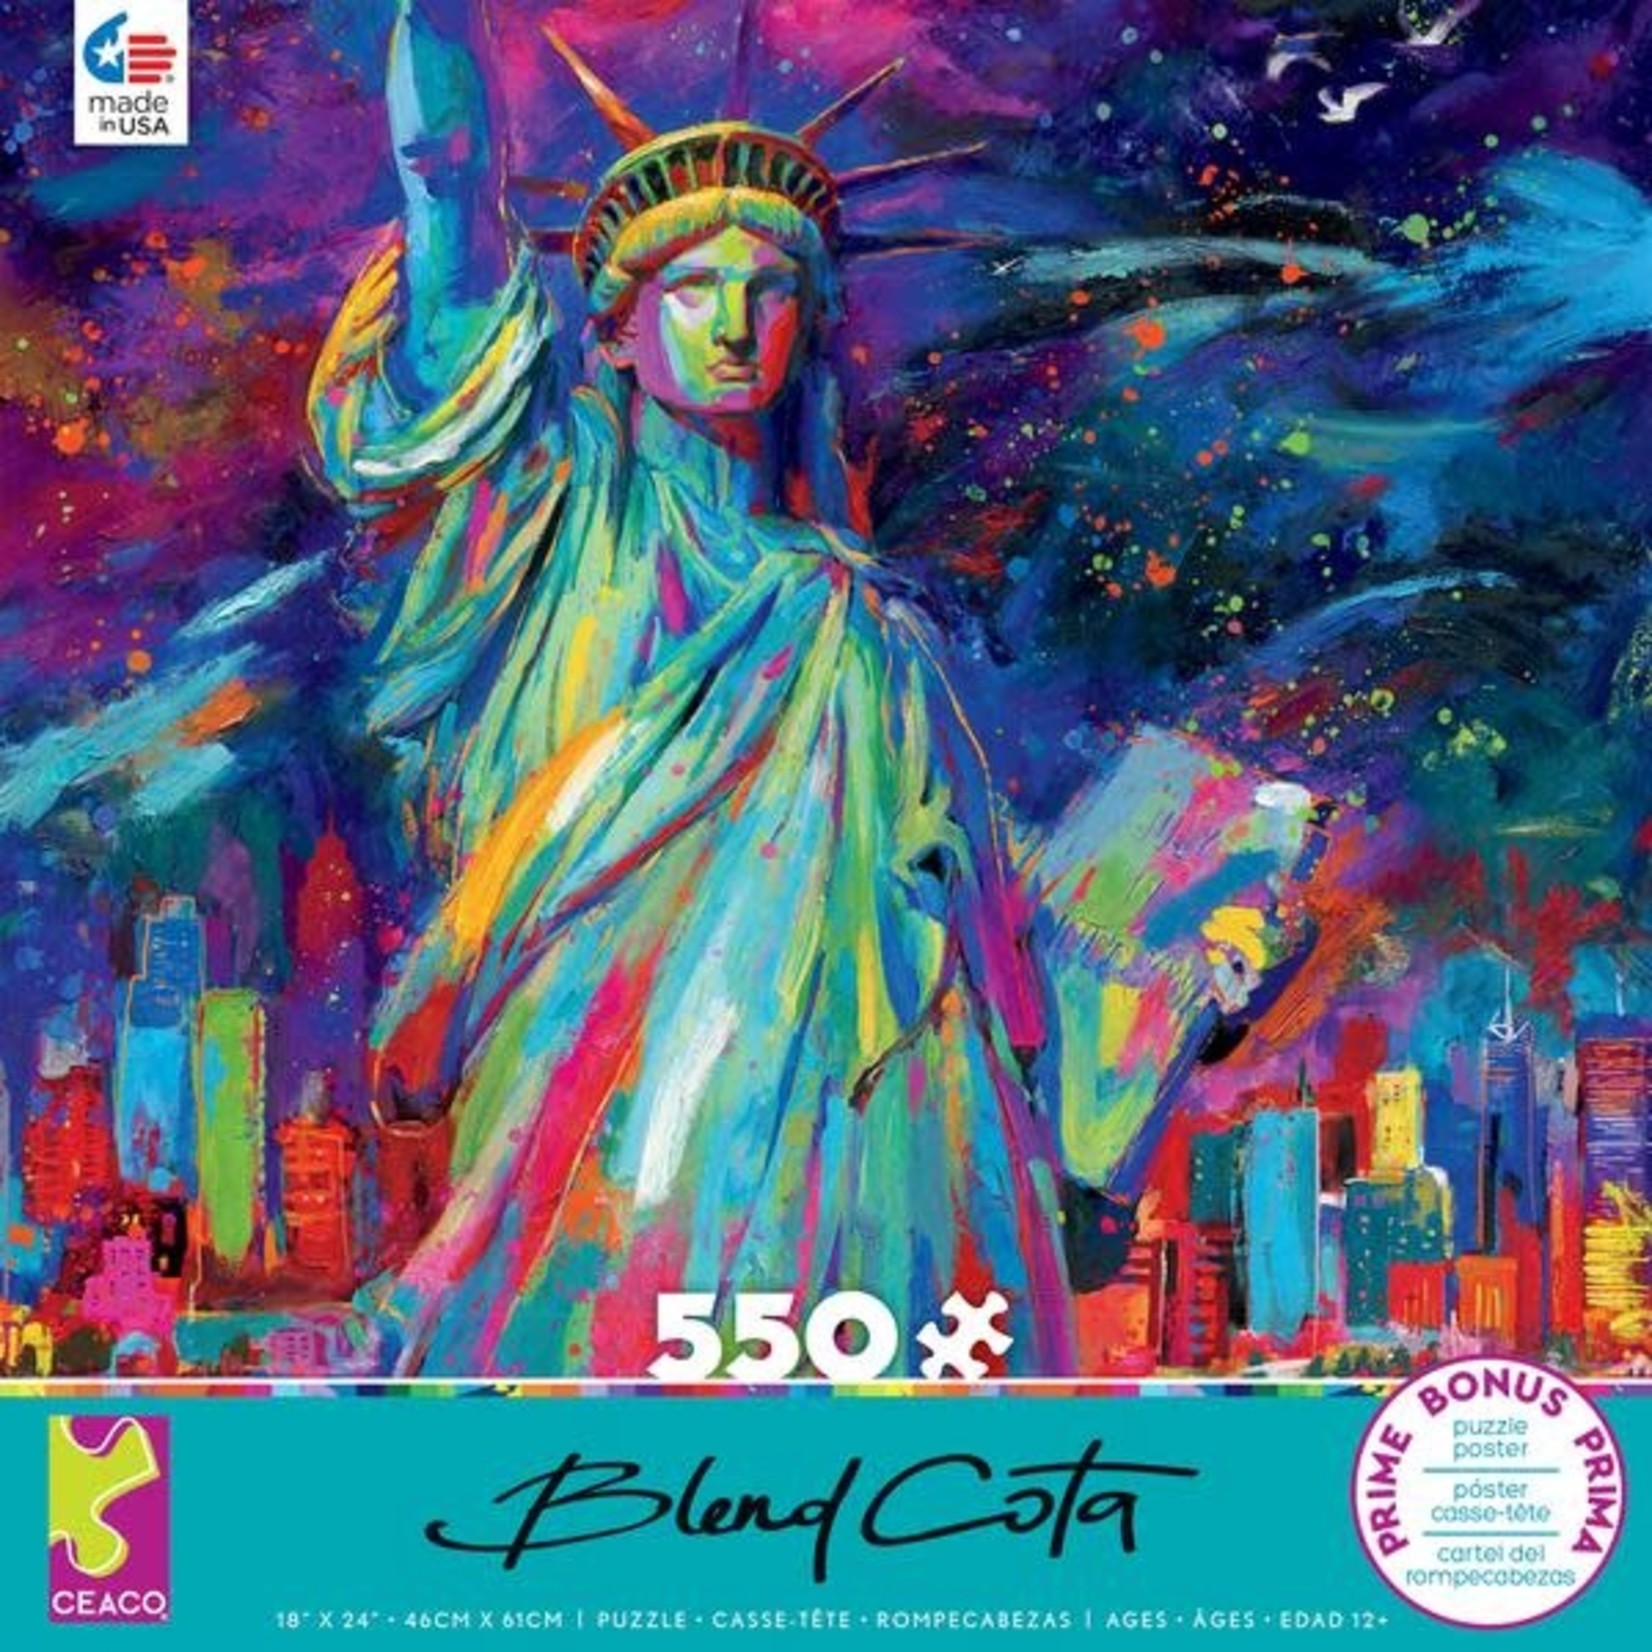 CEACO Lady Liberty BC 550pc